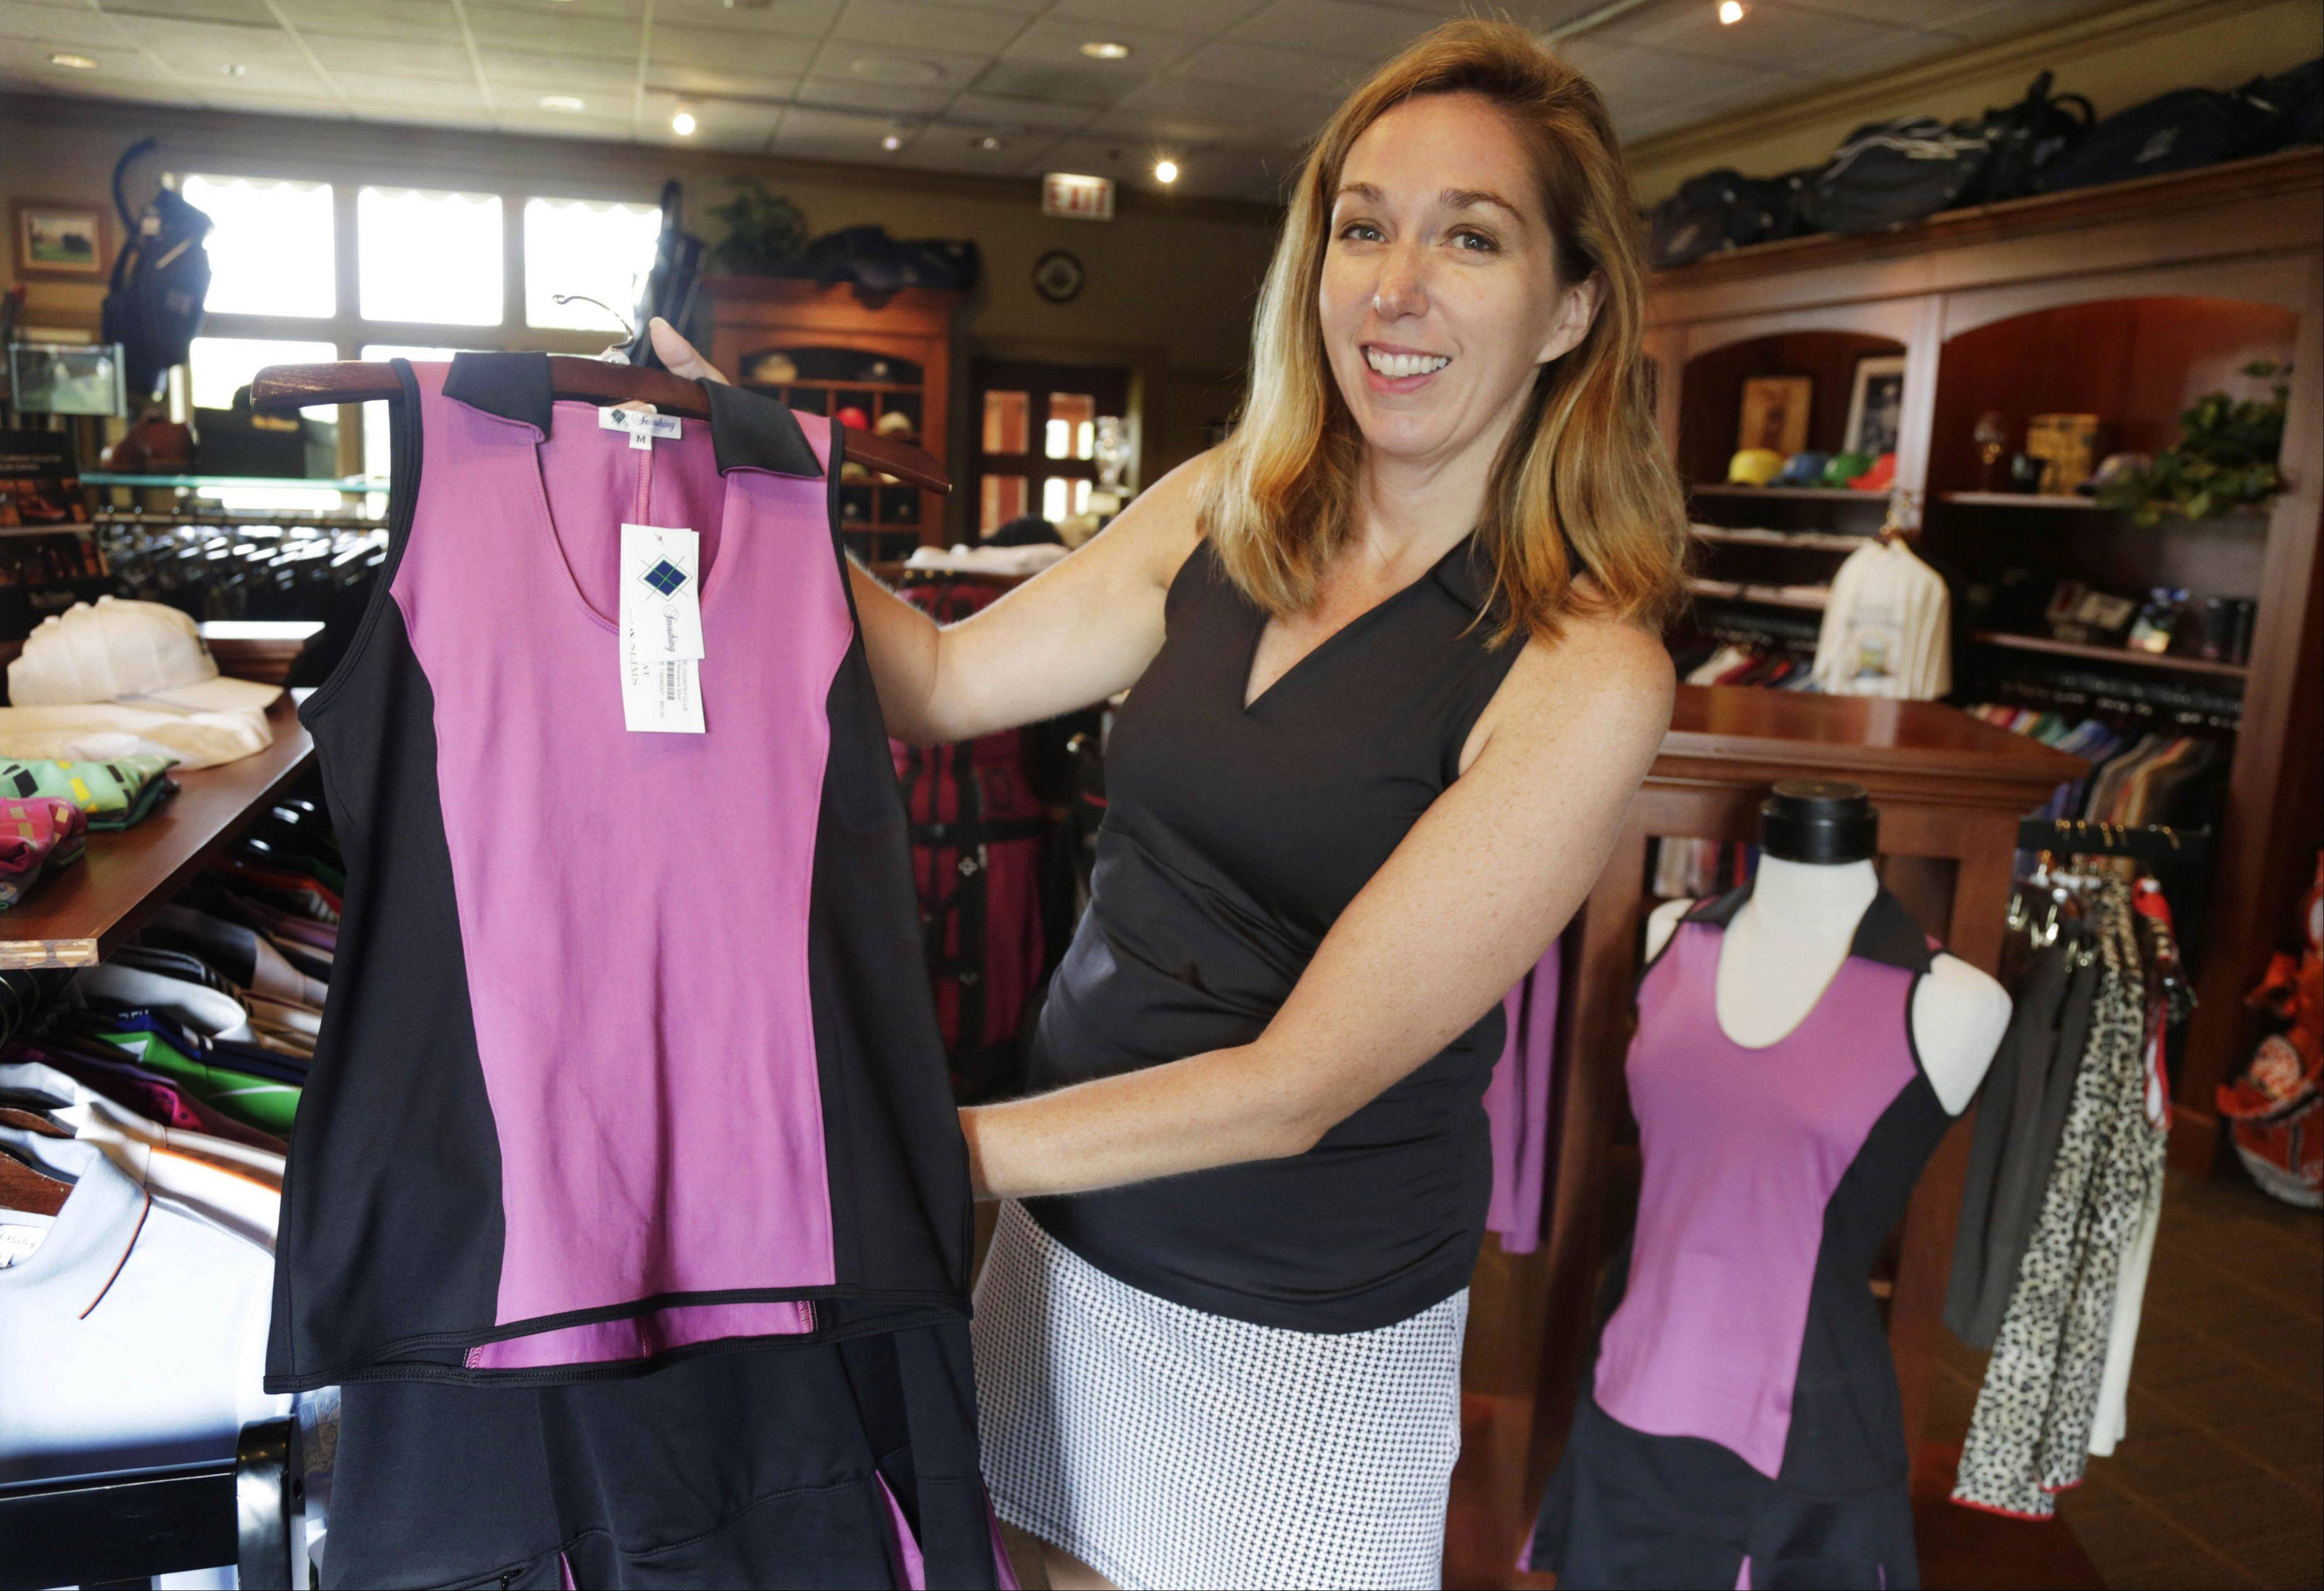 Kelly Daugherty, co-owner of Smashing Golf & Tennis, with her clothing line in the pro shop at Biltmore Country Club in North Barrington. The owners of Smashing Golf & Tennis can't take vacations this summer because they're training new sales people for the company's line of active wear for women. They also are getting their spring styles ready and have to be around for last-minute orders, as this is high season for golfers and tennis players.